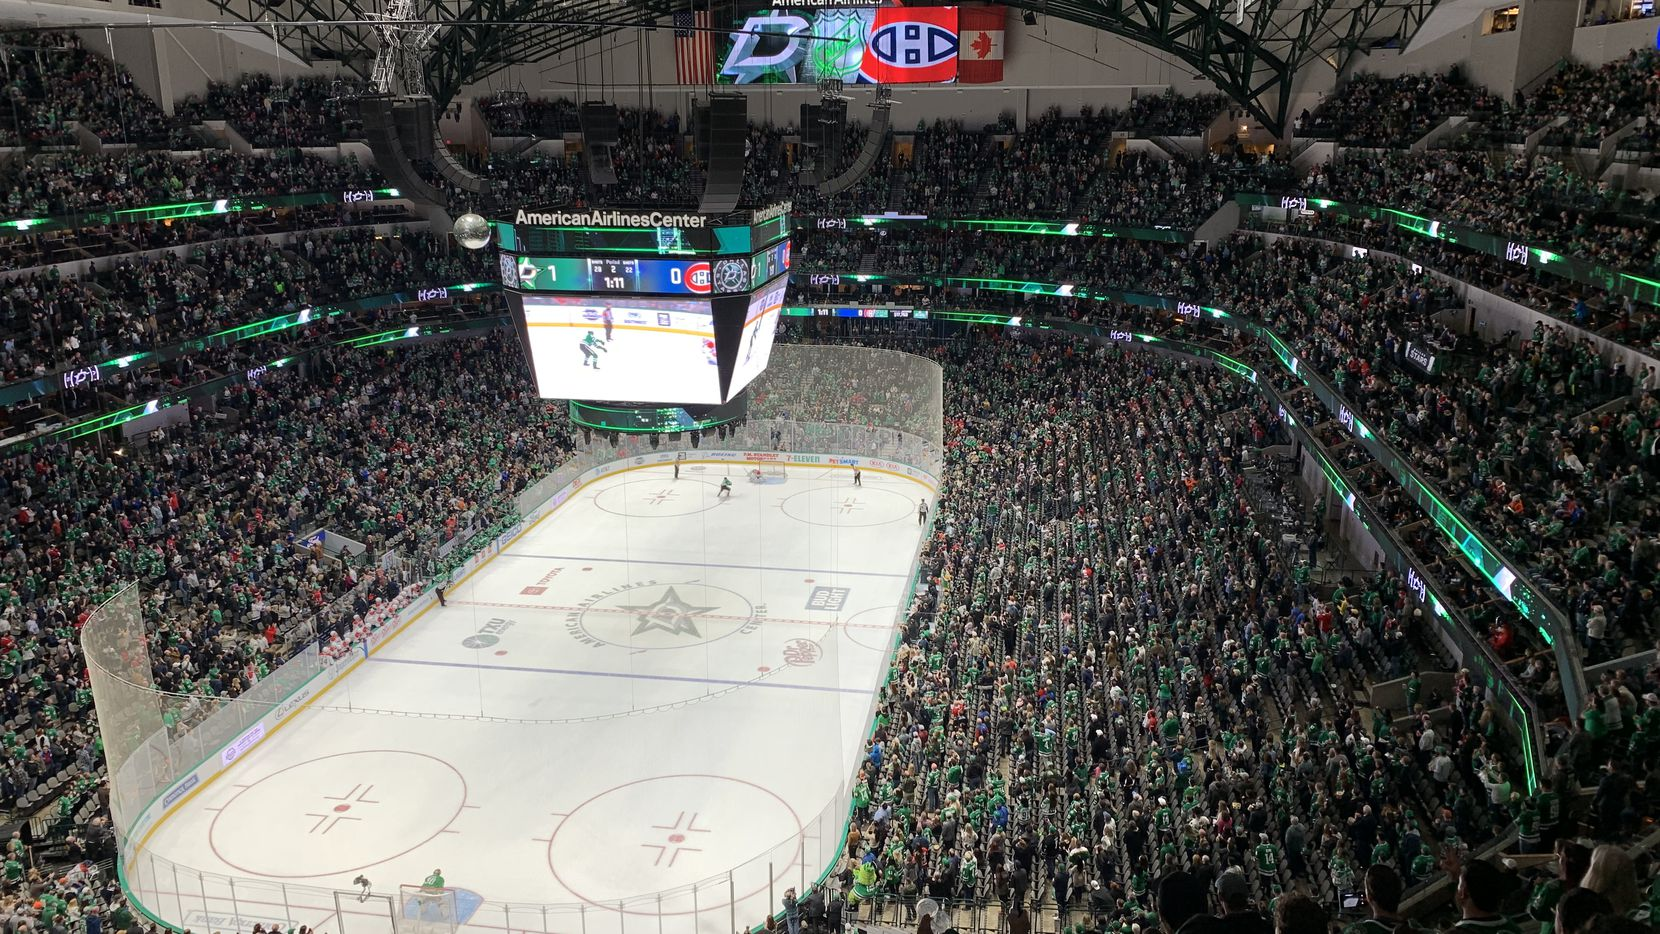 The Dallas Stars played the Montreal Canadiens at American Airlines Center on Nov. 2, the night Tyra Damm attended as part of a Teachers of the Year recognition.